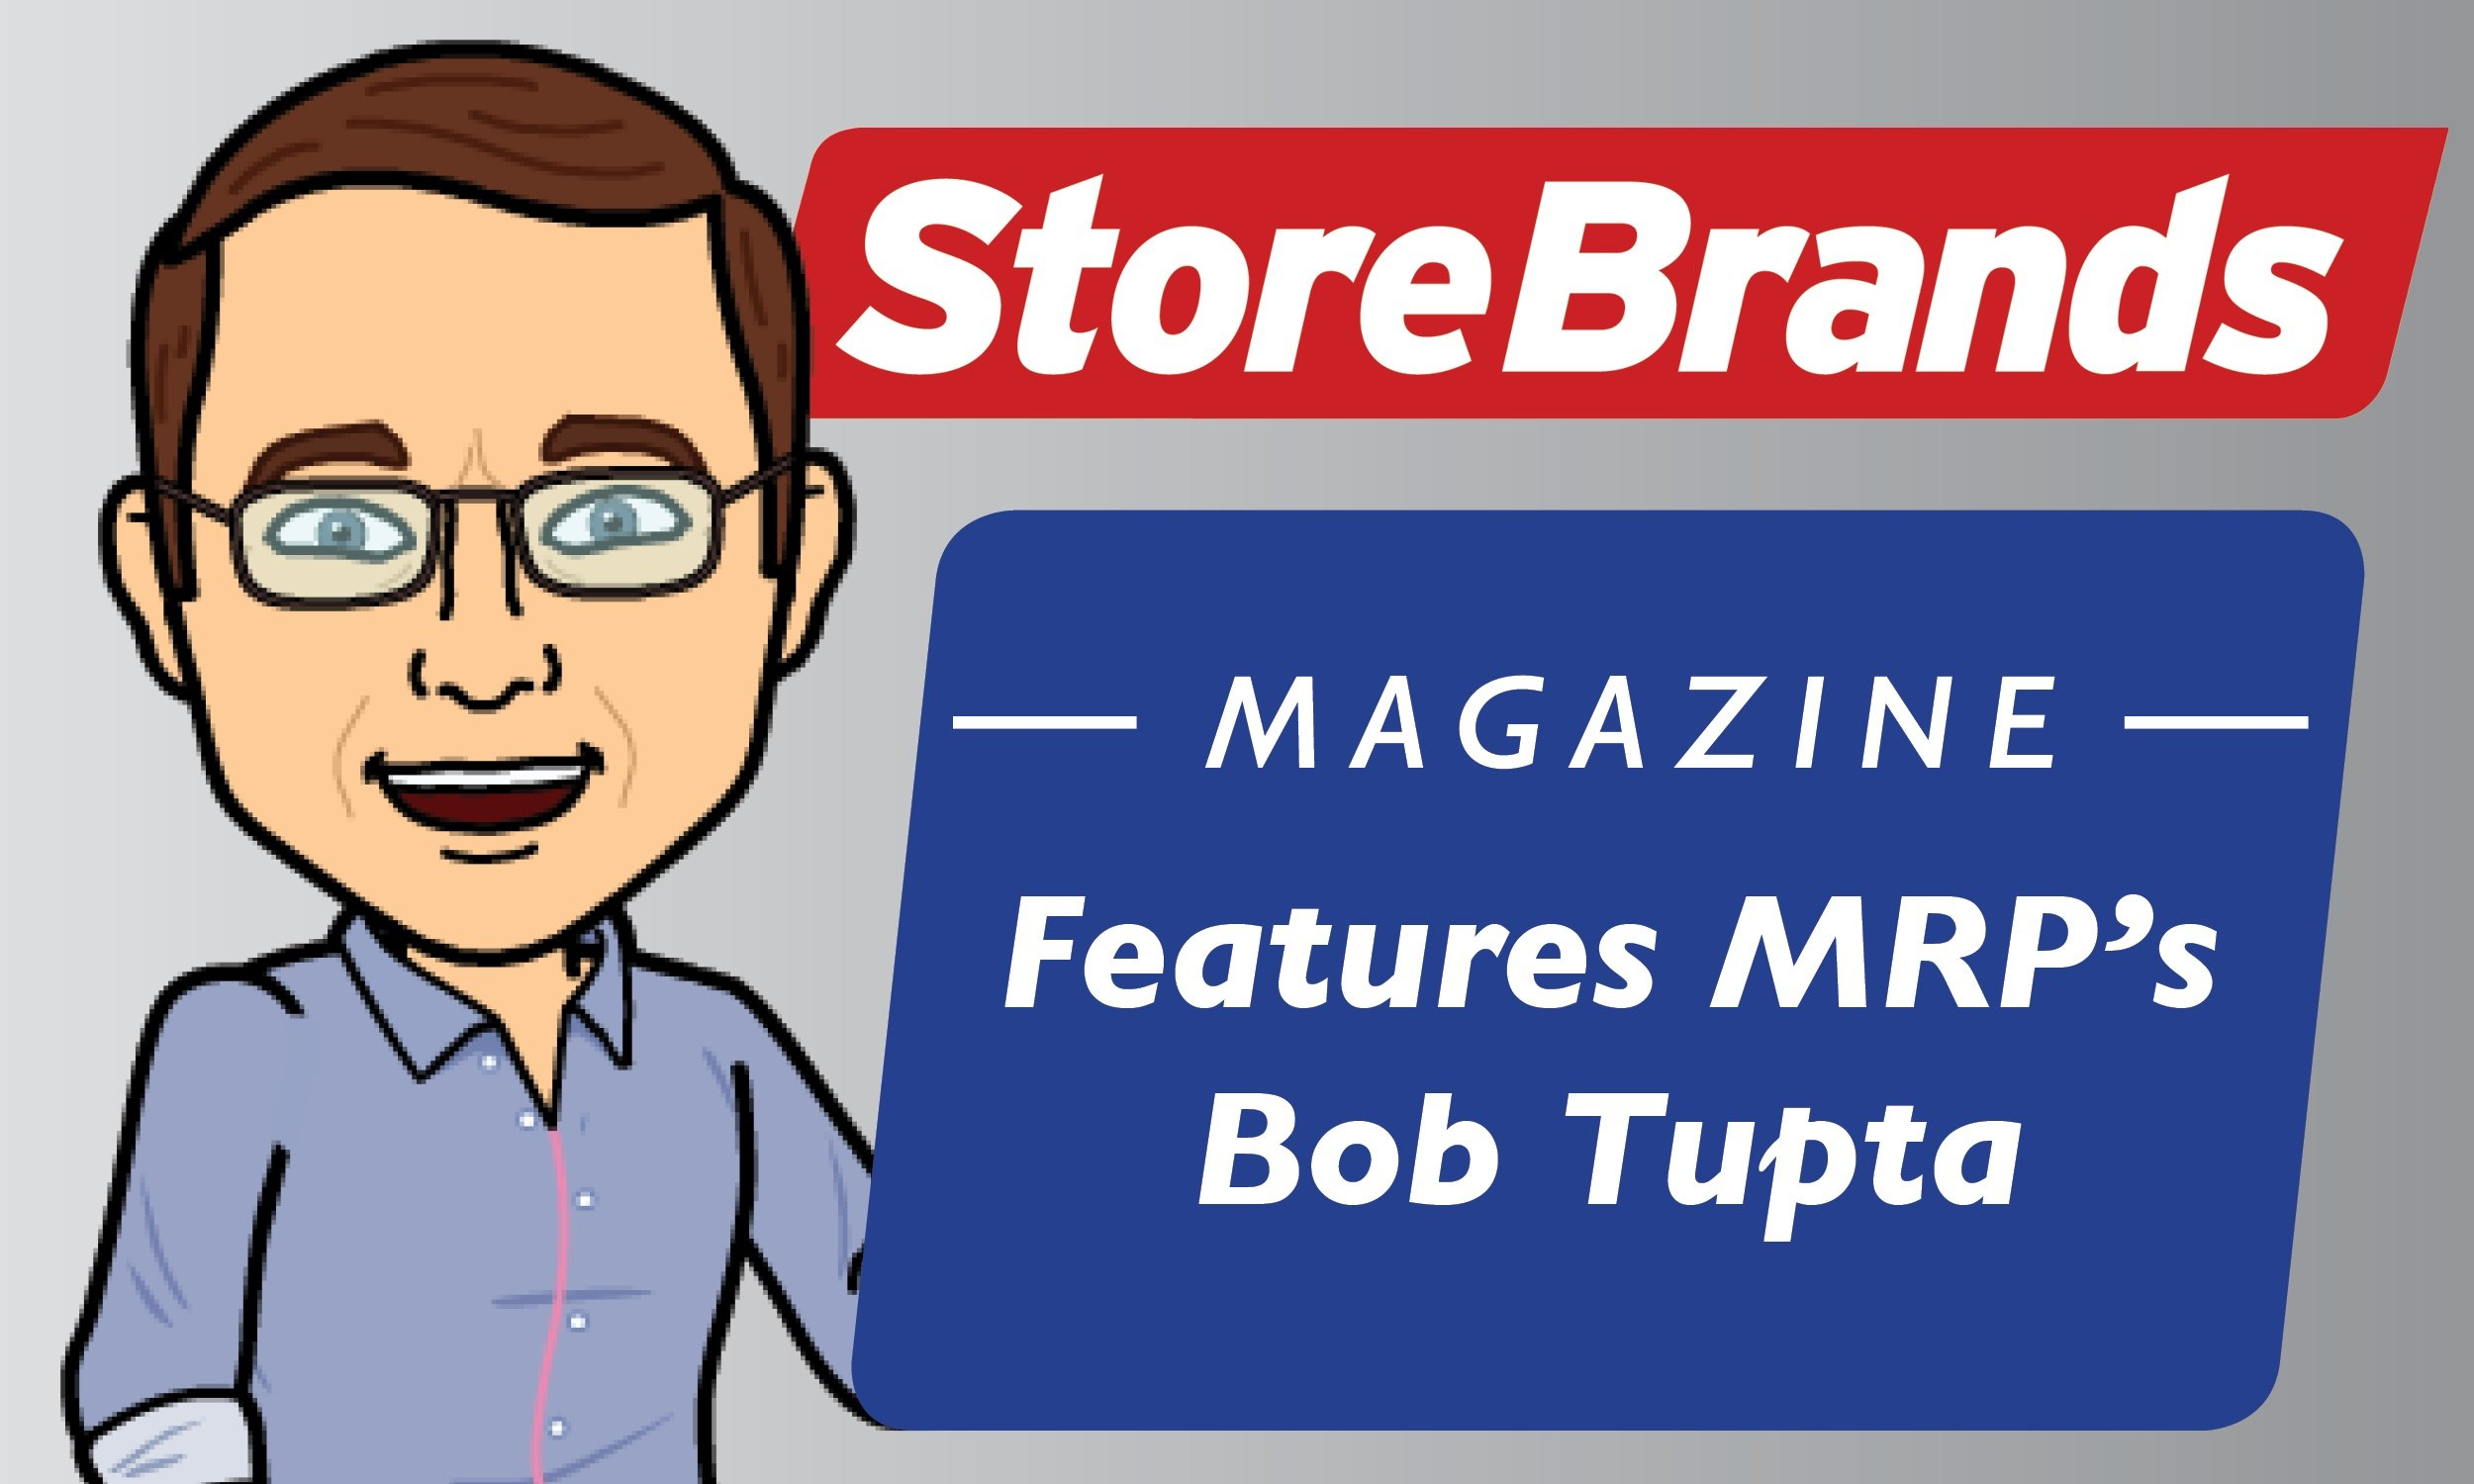 Store Brands Magazine Features MRP